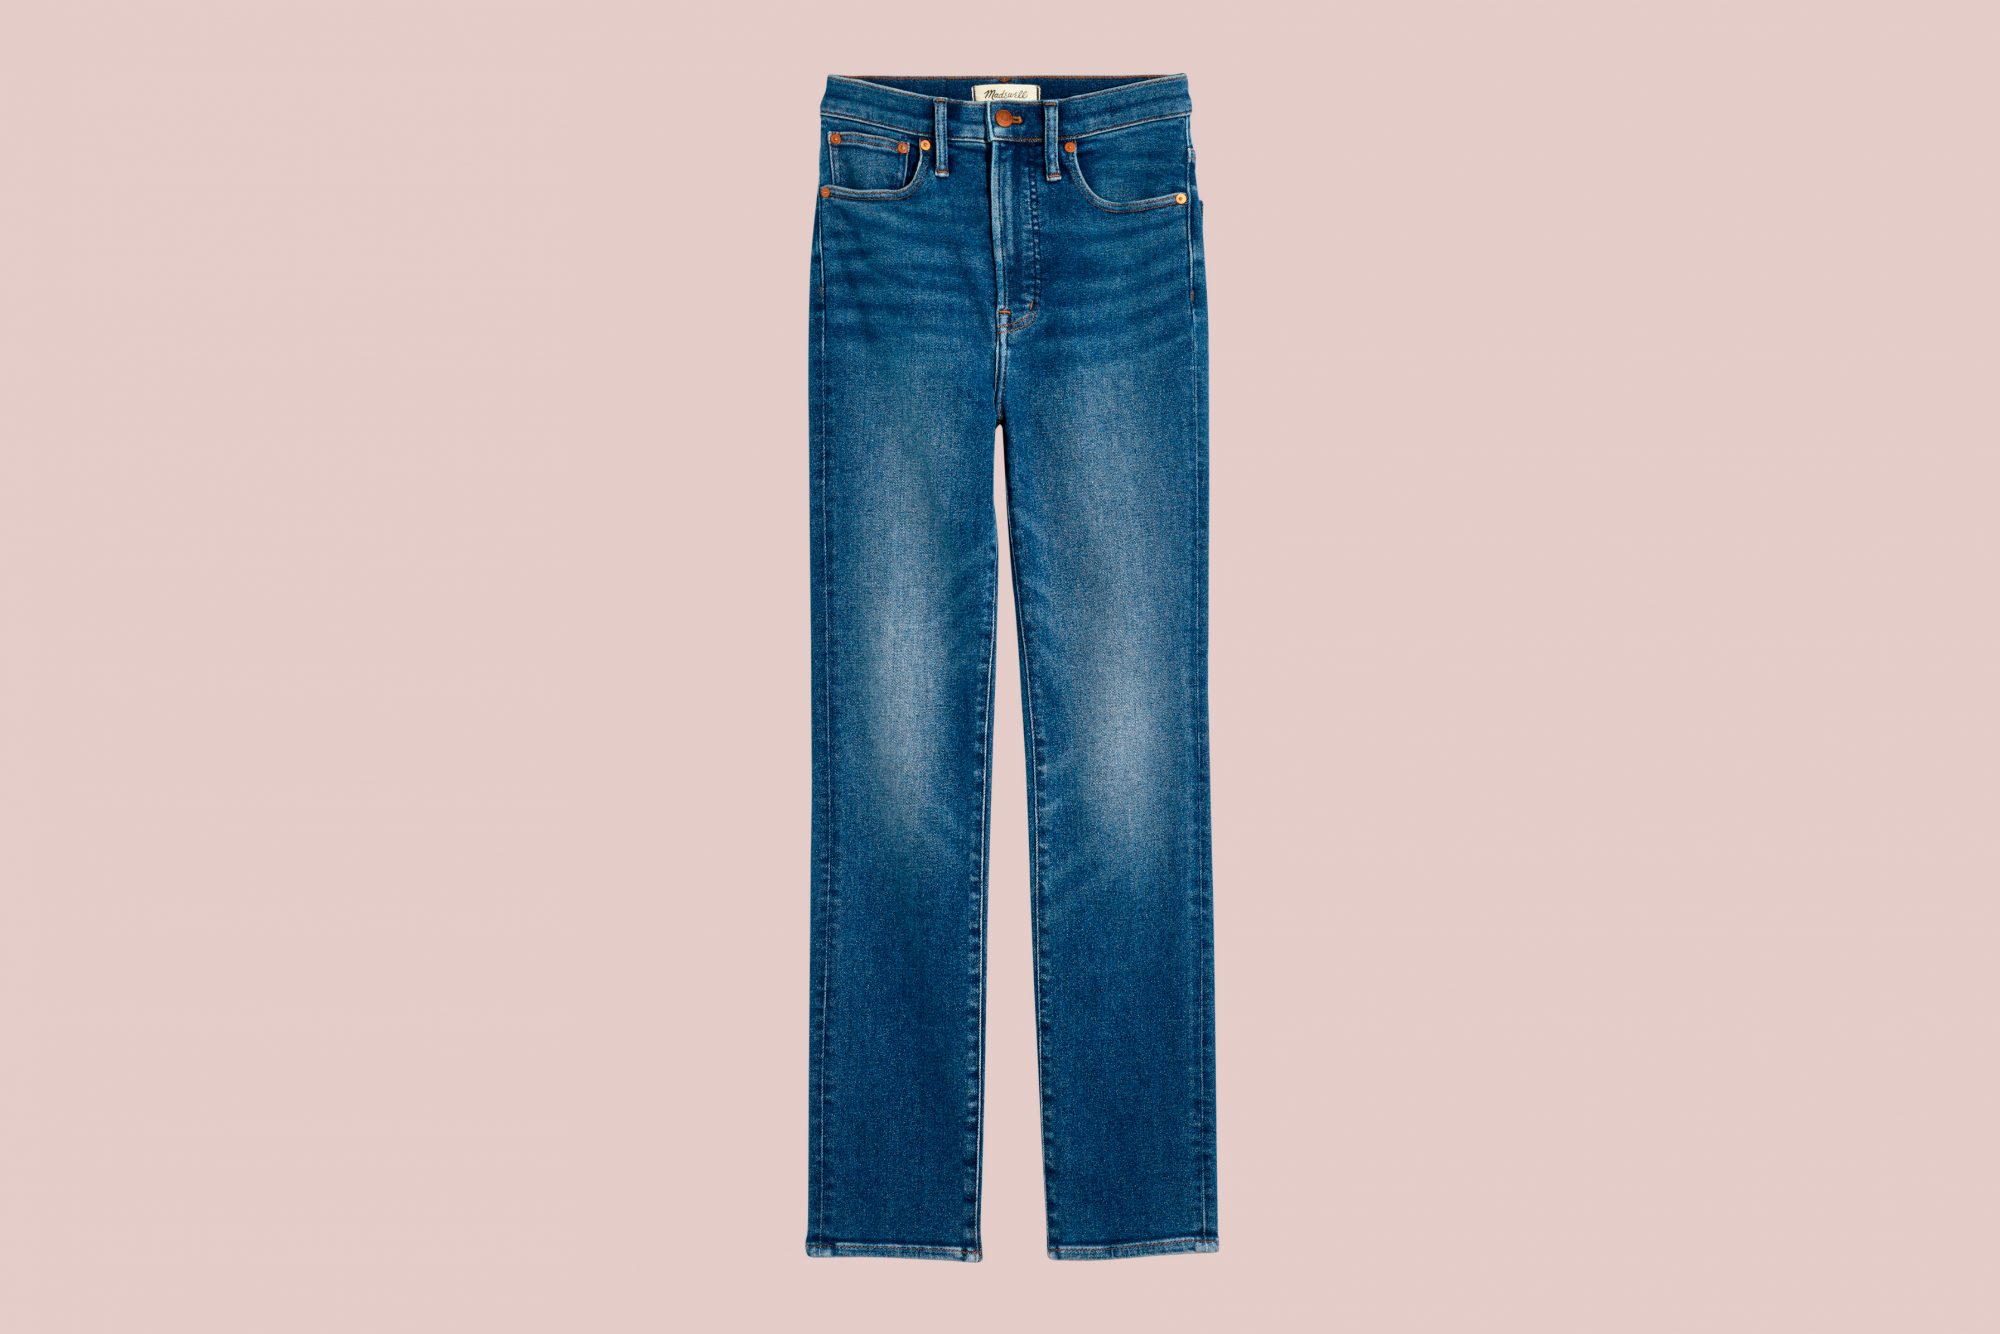 Madewell Perfect Vintage Jeans in Maplewood Wash